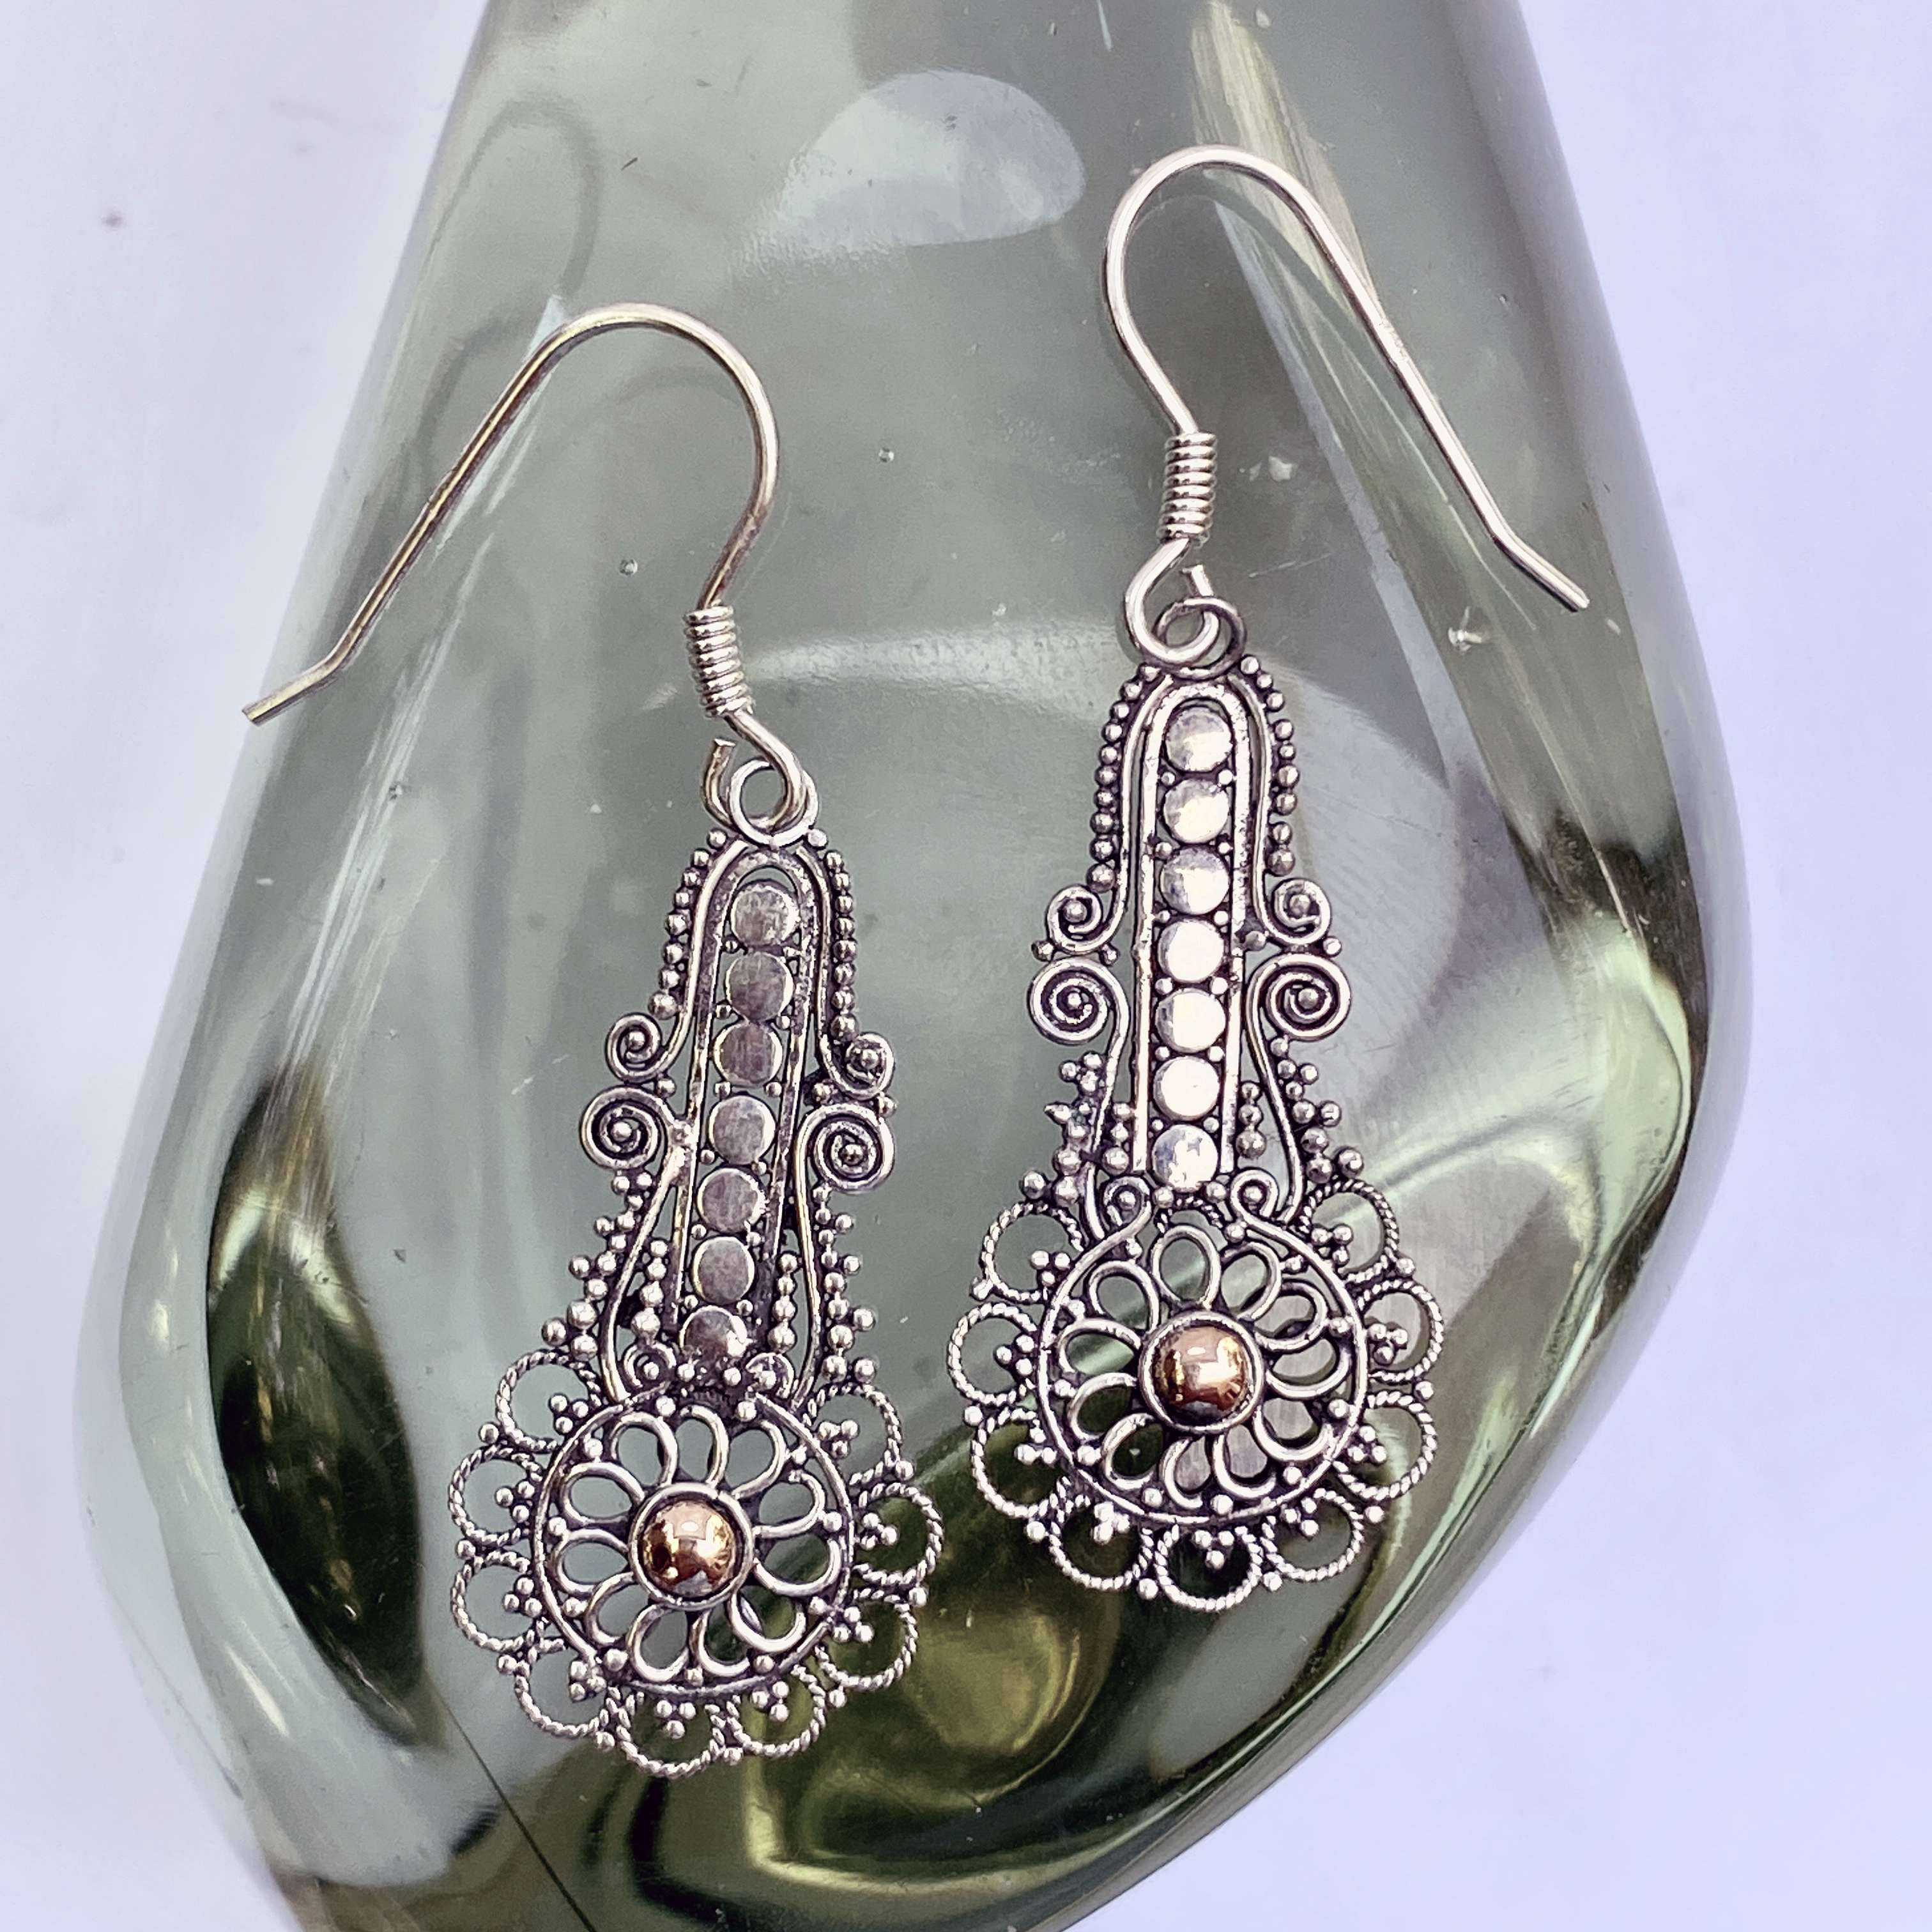 (HANDMADE 925 BALI SILVER FILIGREE EARRINGS WITH 18KT GOLD ACCENT)